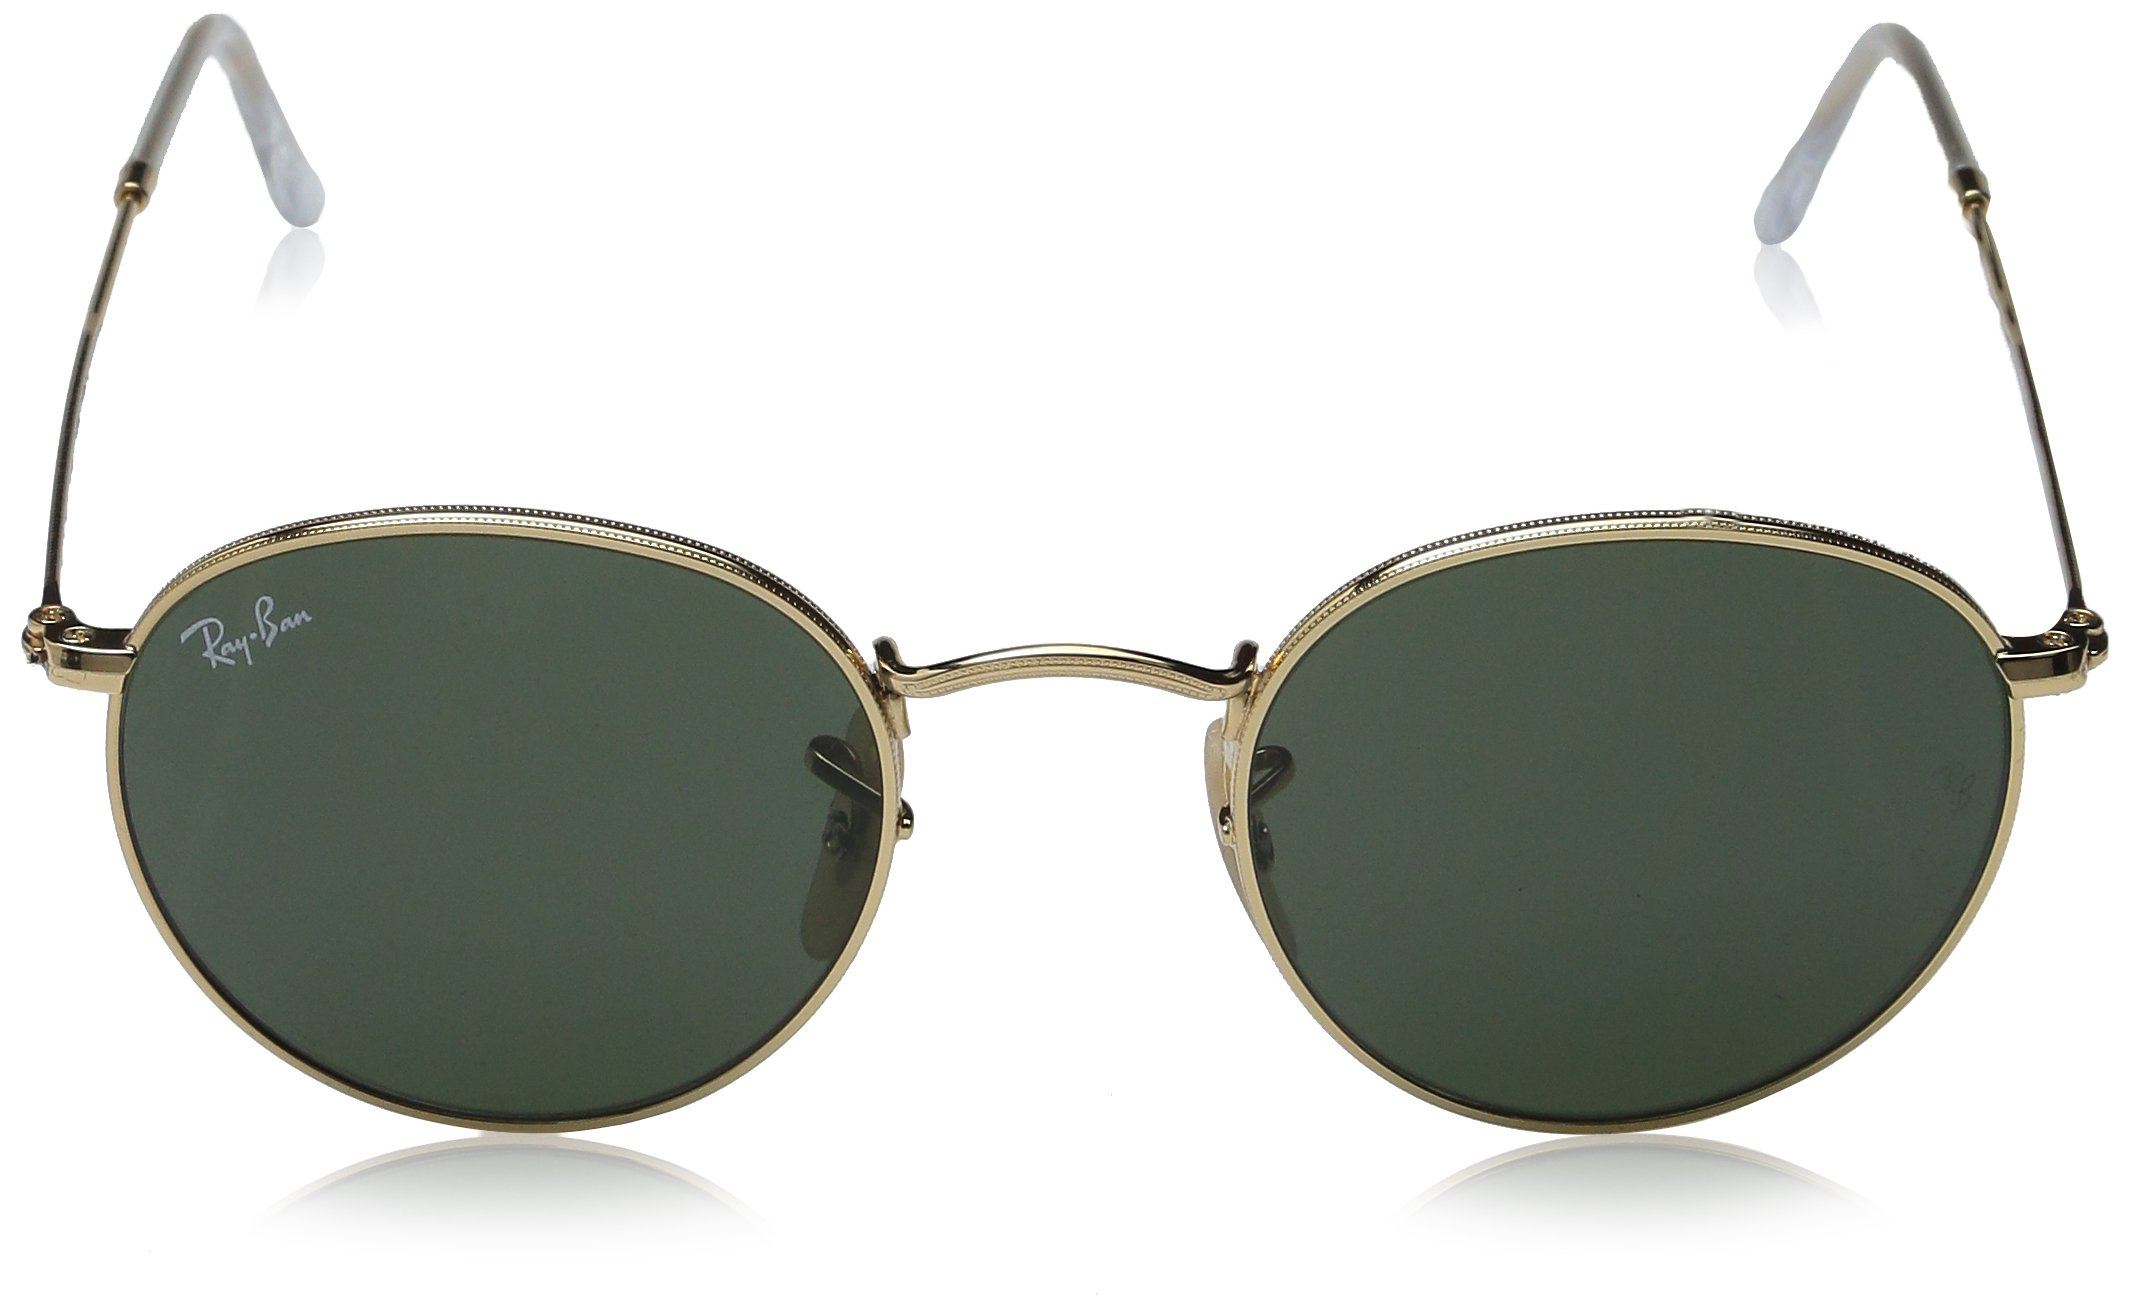 b7016d1cce3bc Ray Ban Polarized Price In Philippines   David Simchi-Levi